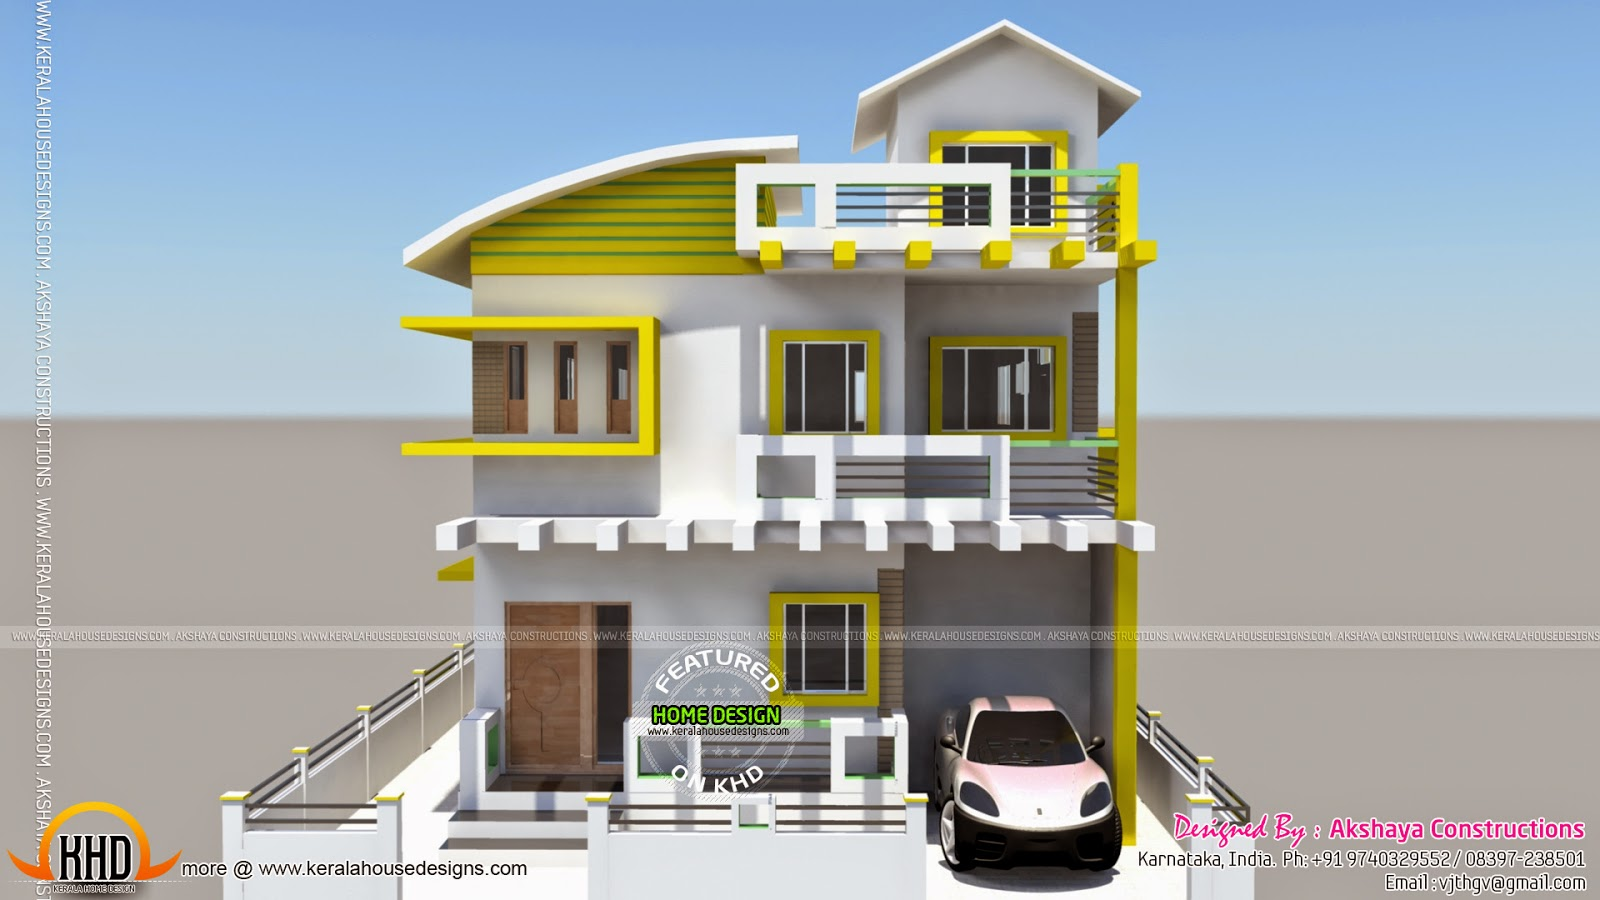 Karnataka home design kerala home design and floor plans for Home designs video